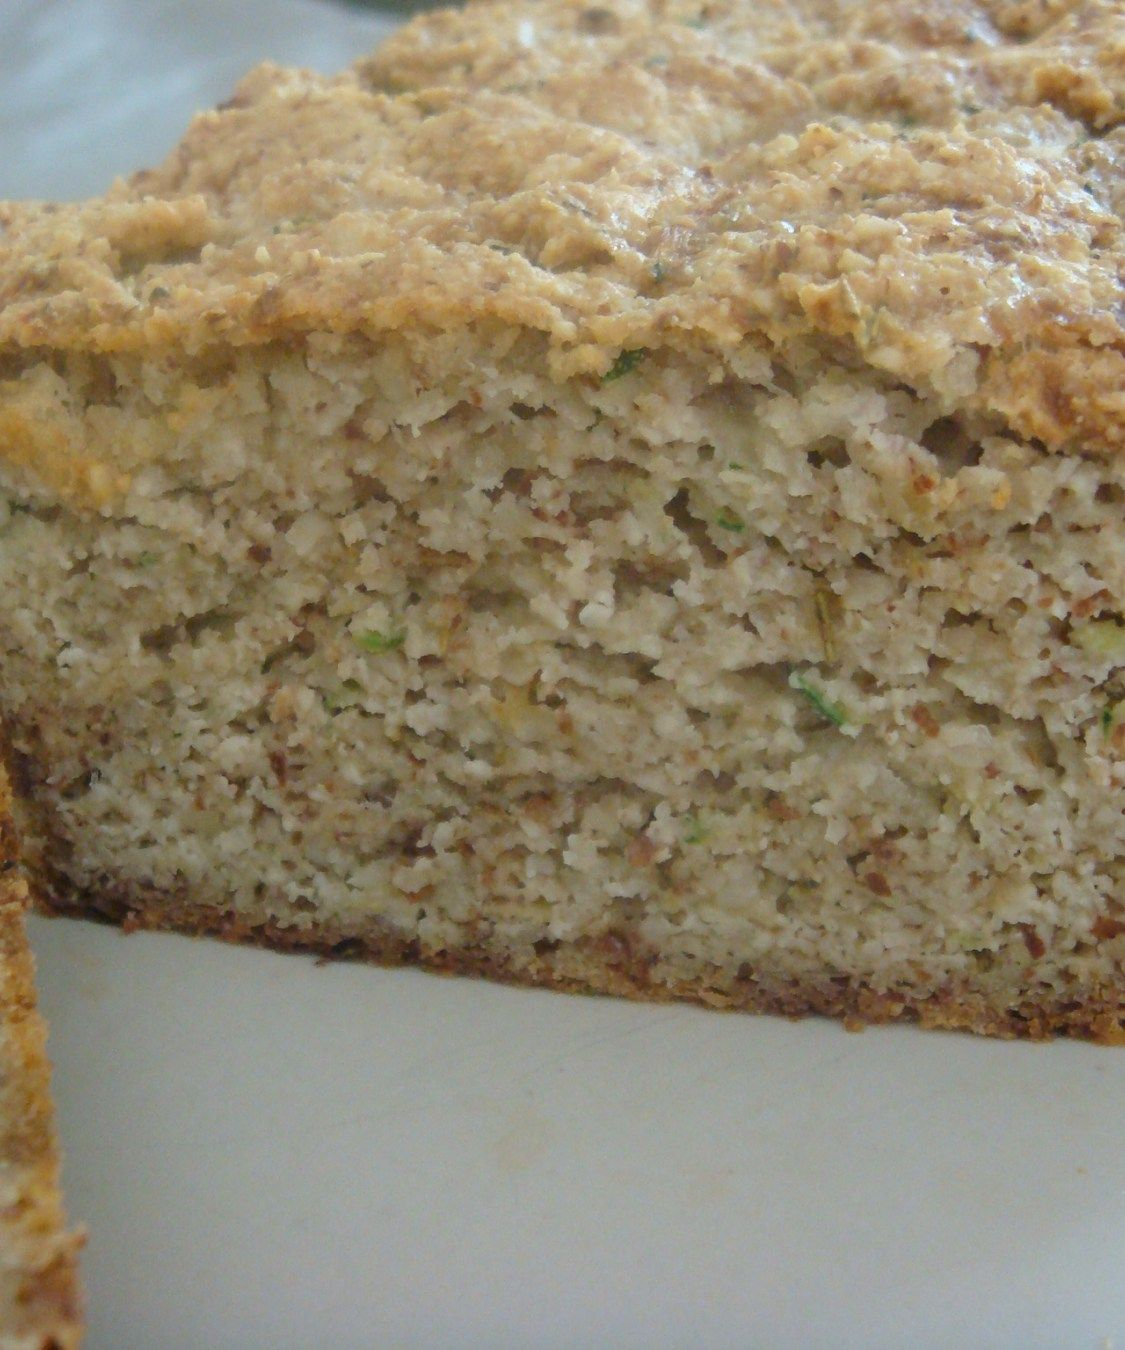 Courgette(Zucchini),Rosemary and Cheese Bread